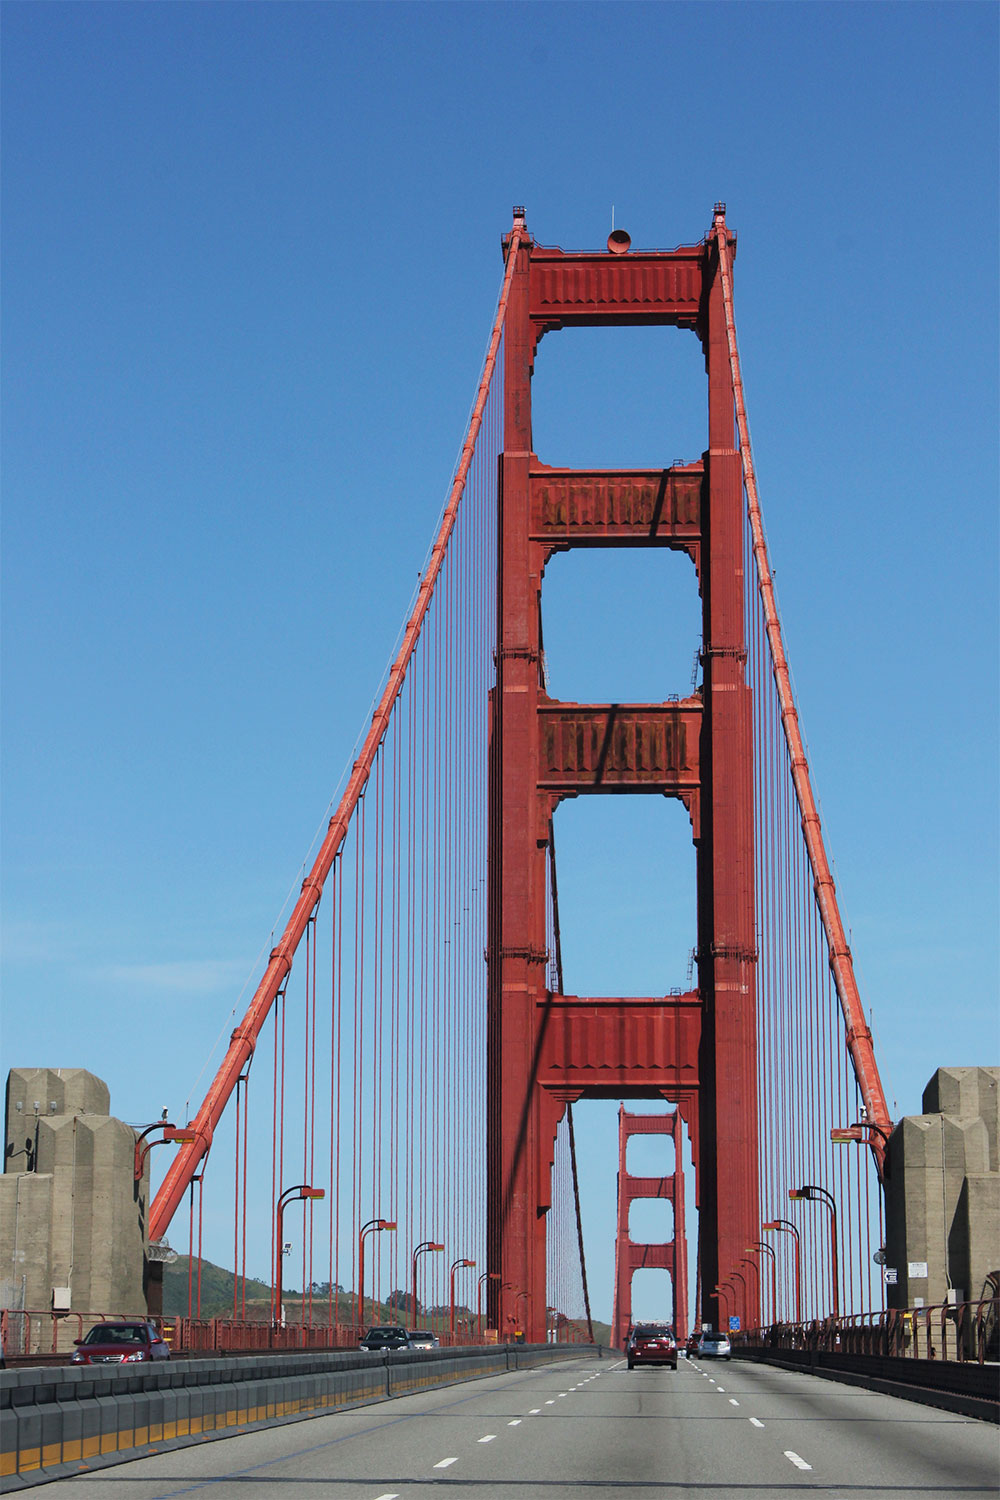 1-Savannah-Rose-Travels---San-Francisco,-California---Day-1